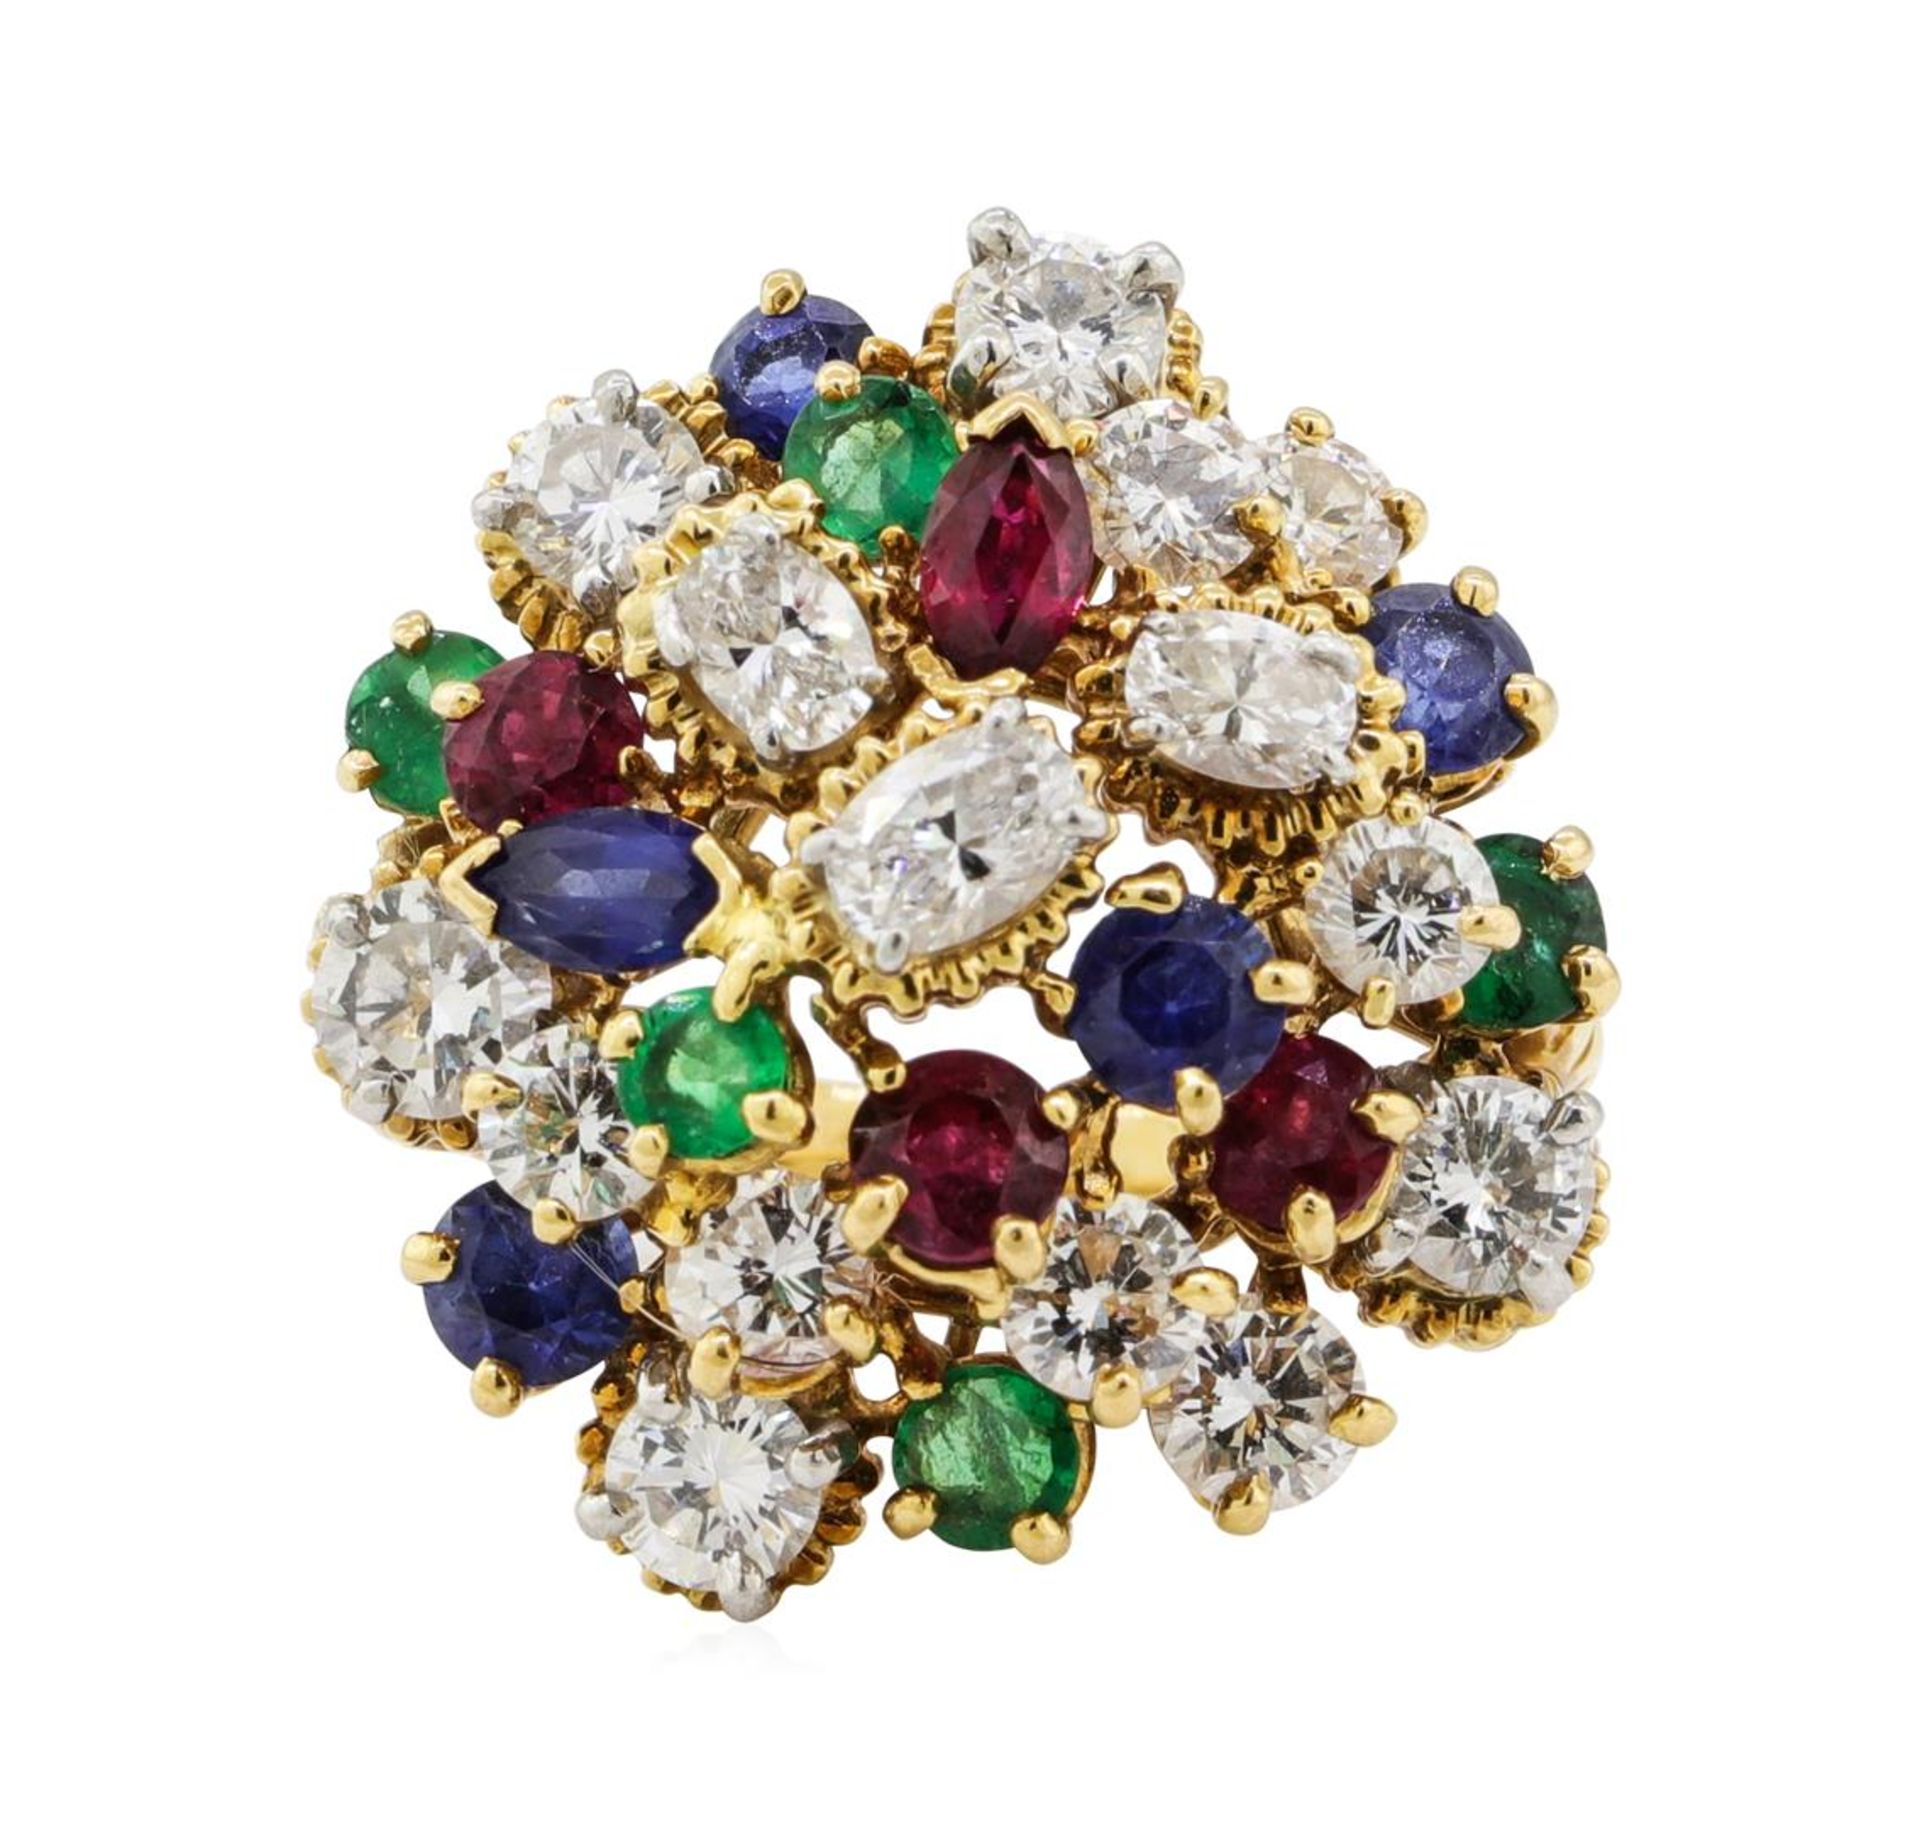 7.08 ctw Ruby, Emerald, Sapphire, and Diamond Ring - 18KT Yellow Gold and Platin - Image 2 of 6